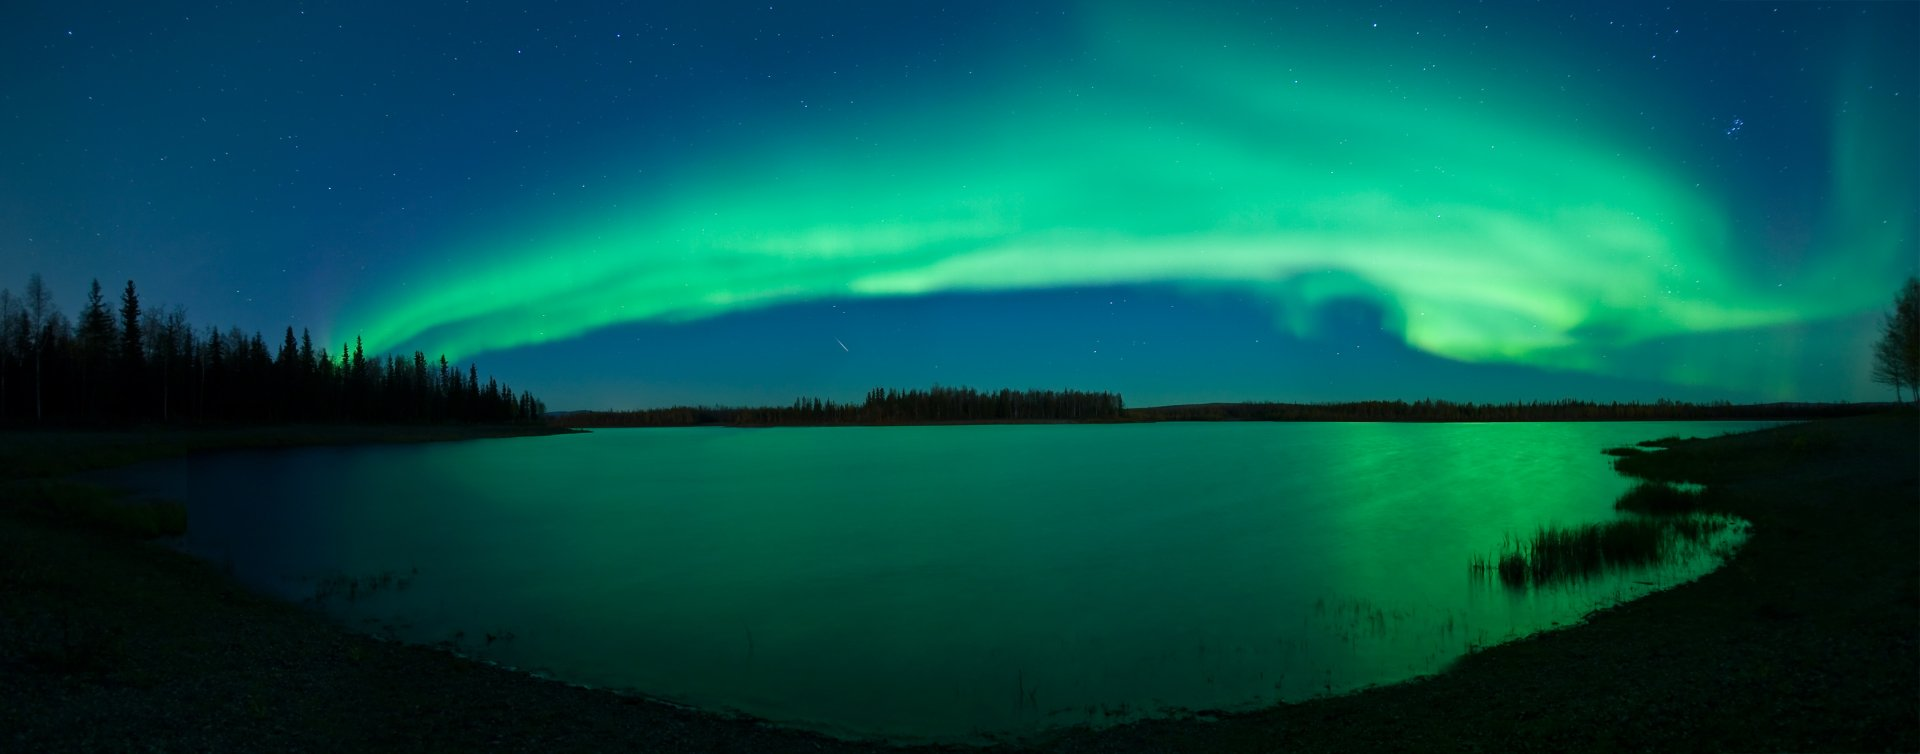 Erde/Natur - Aurora Borealis  Himmel Night Wallpaper